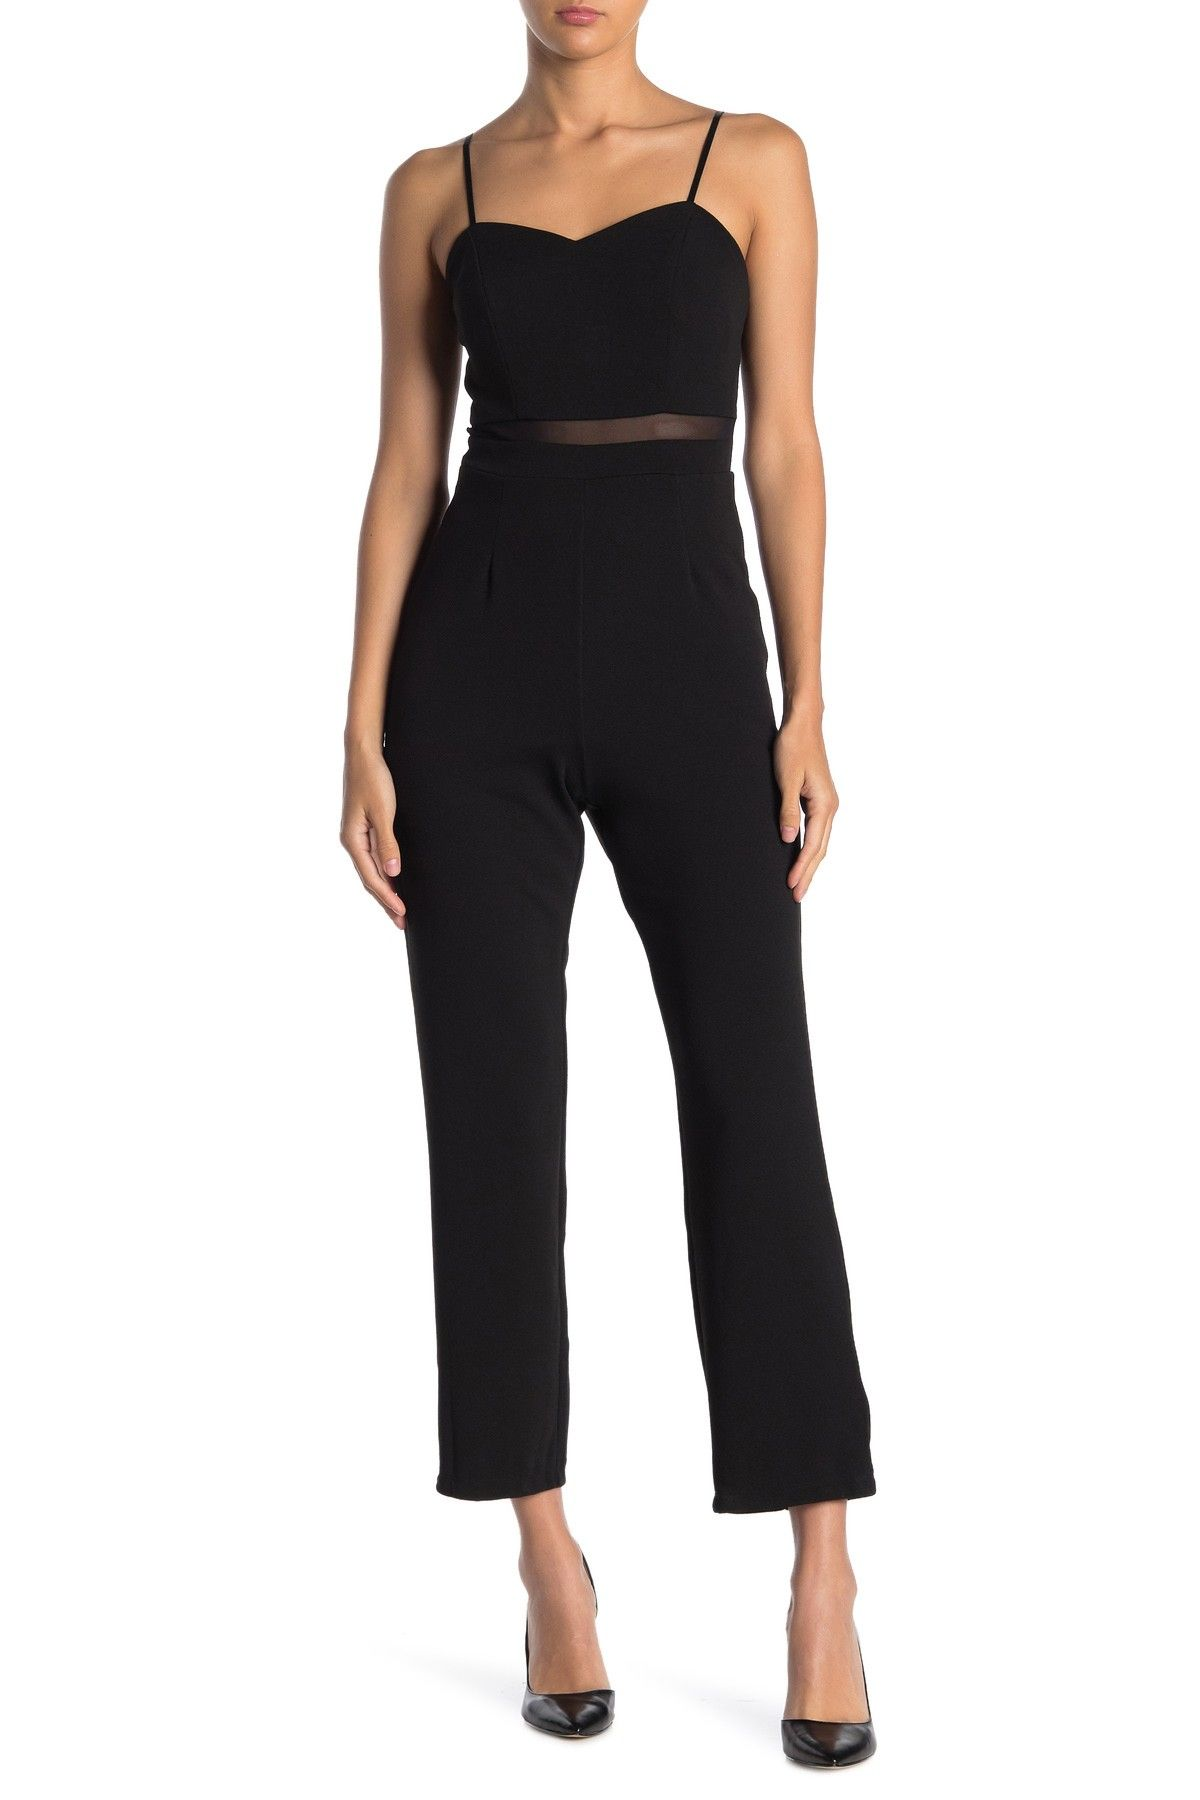 Love, Nickie Lew | Illusion Waist Jumpsuit #nordstromrack